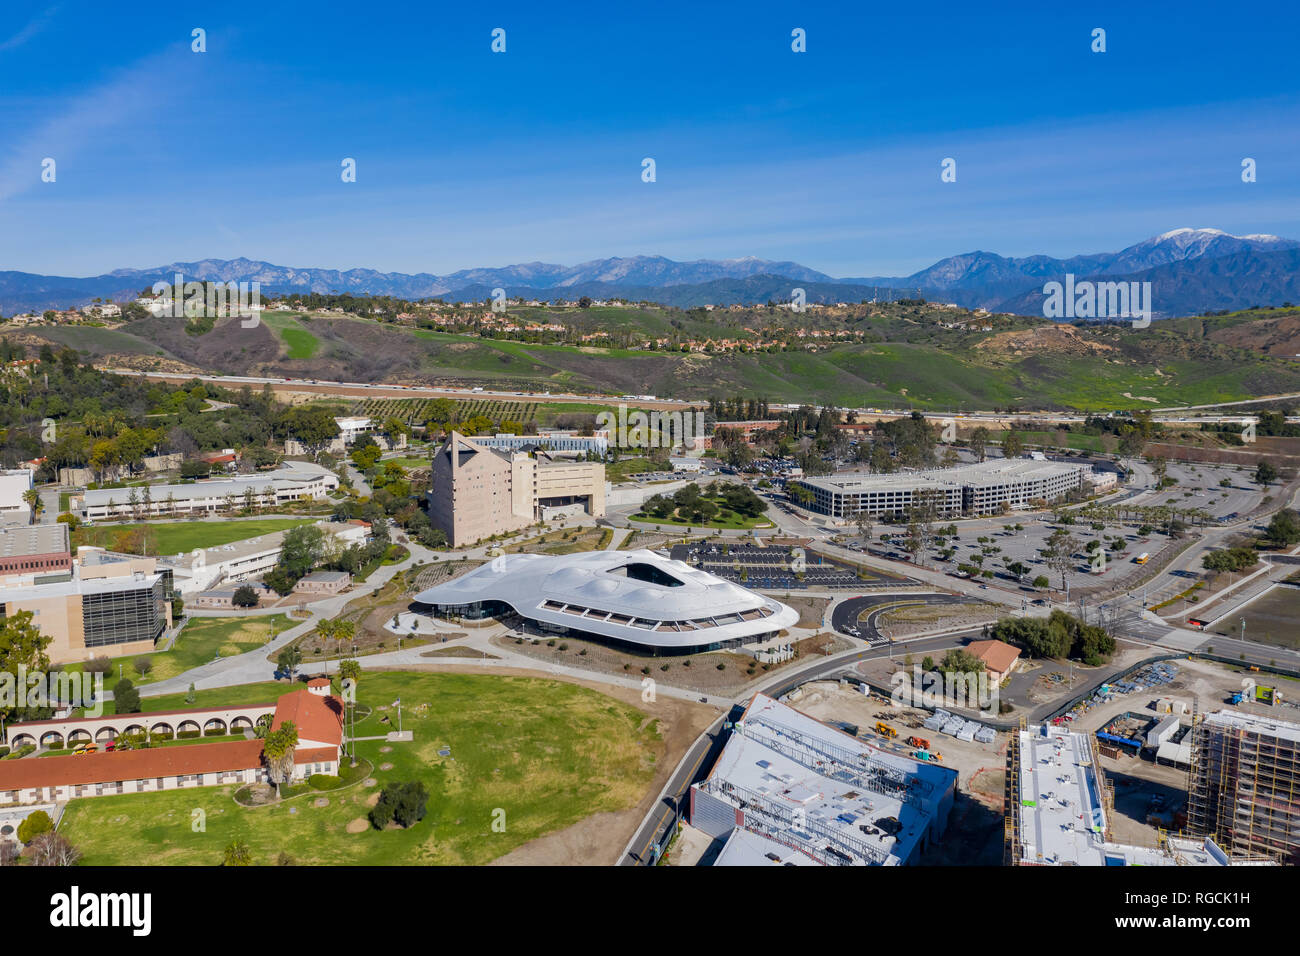 Aerial view of the Student Services Building of Cal Poly Pomona campus, California - Stock Image